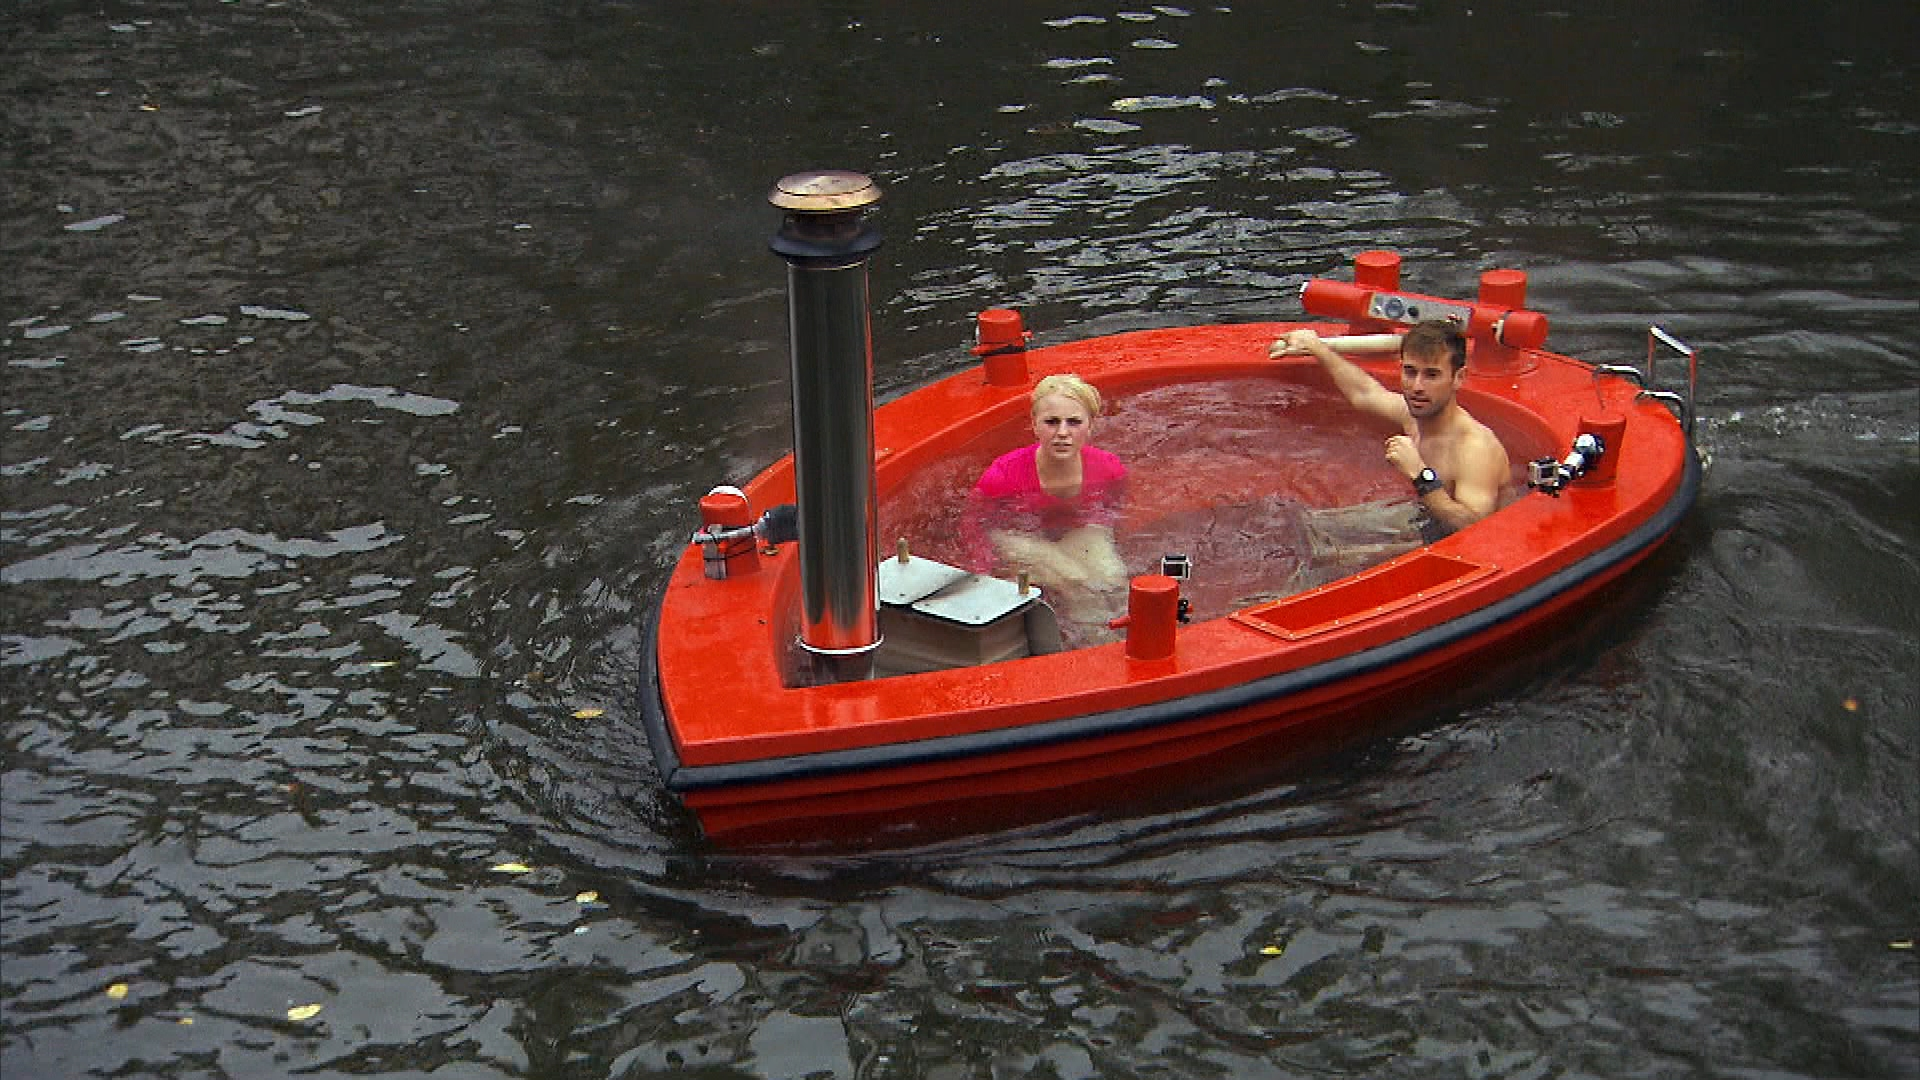 Blind daters and a floating hot tub